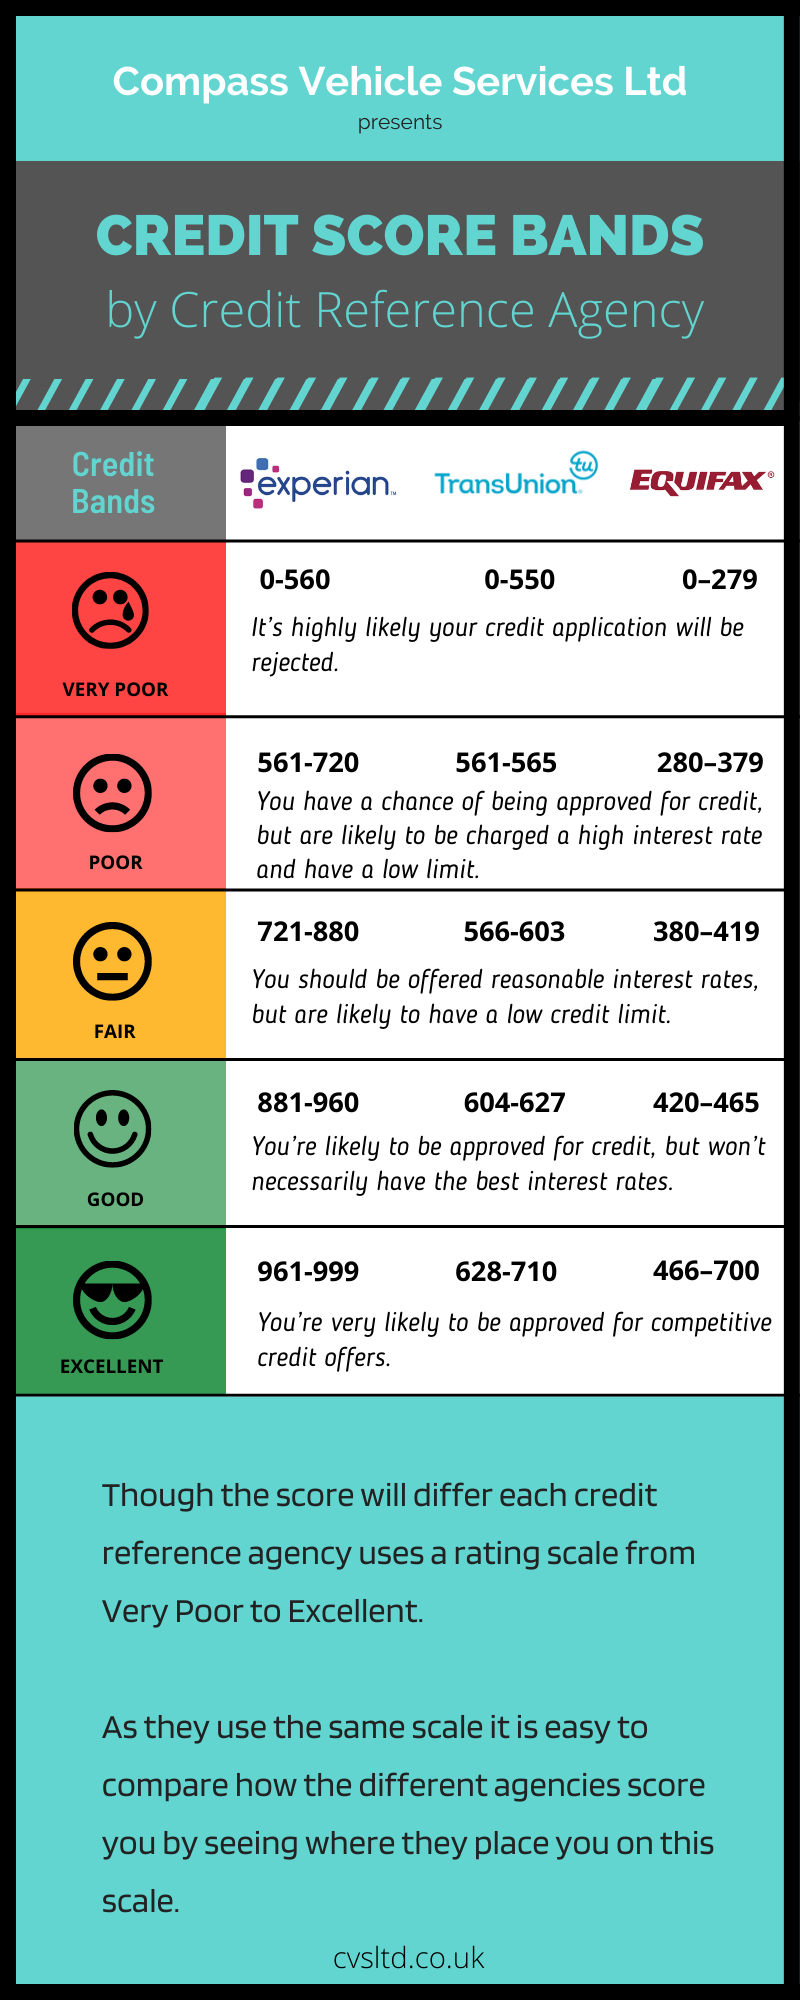 infographic - credit score bands by credit reference agency